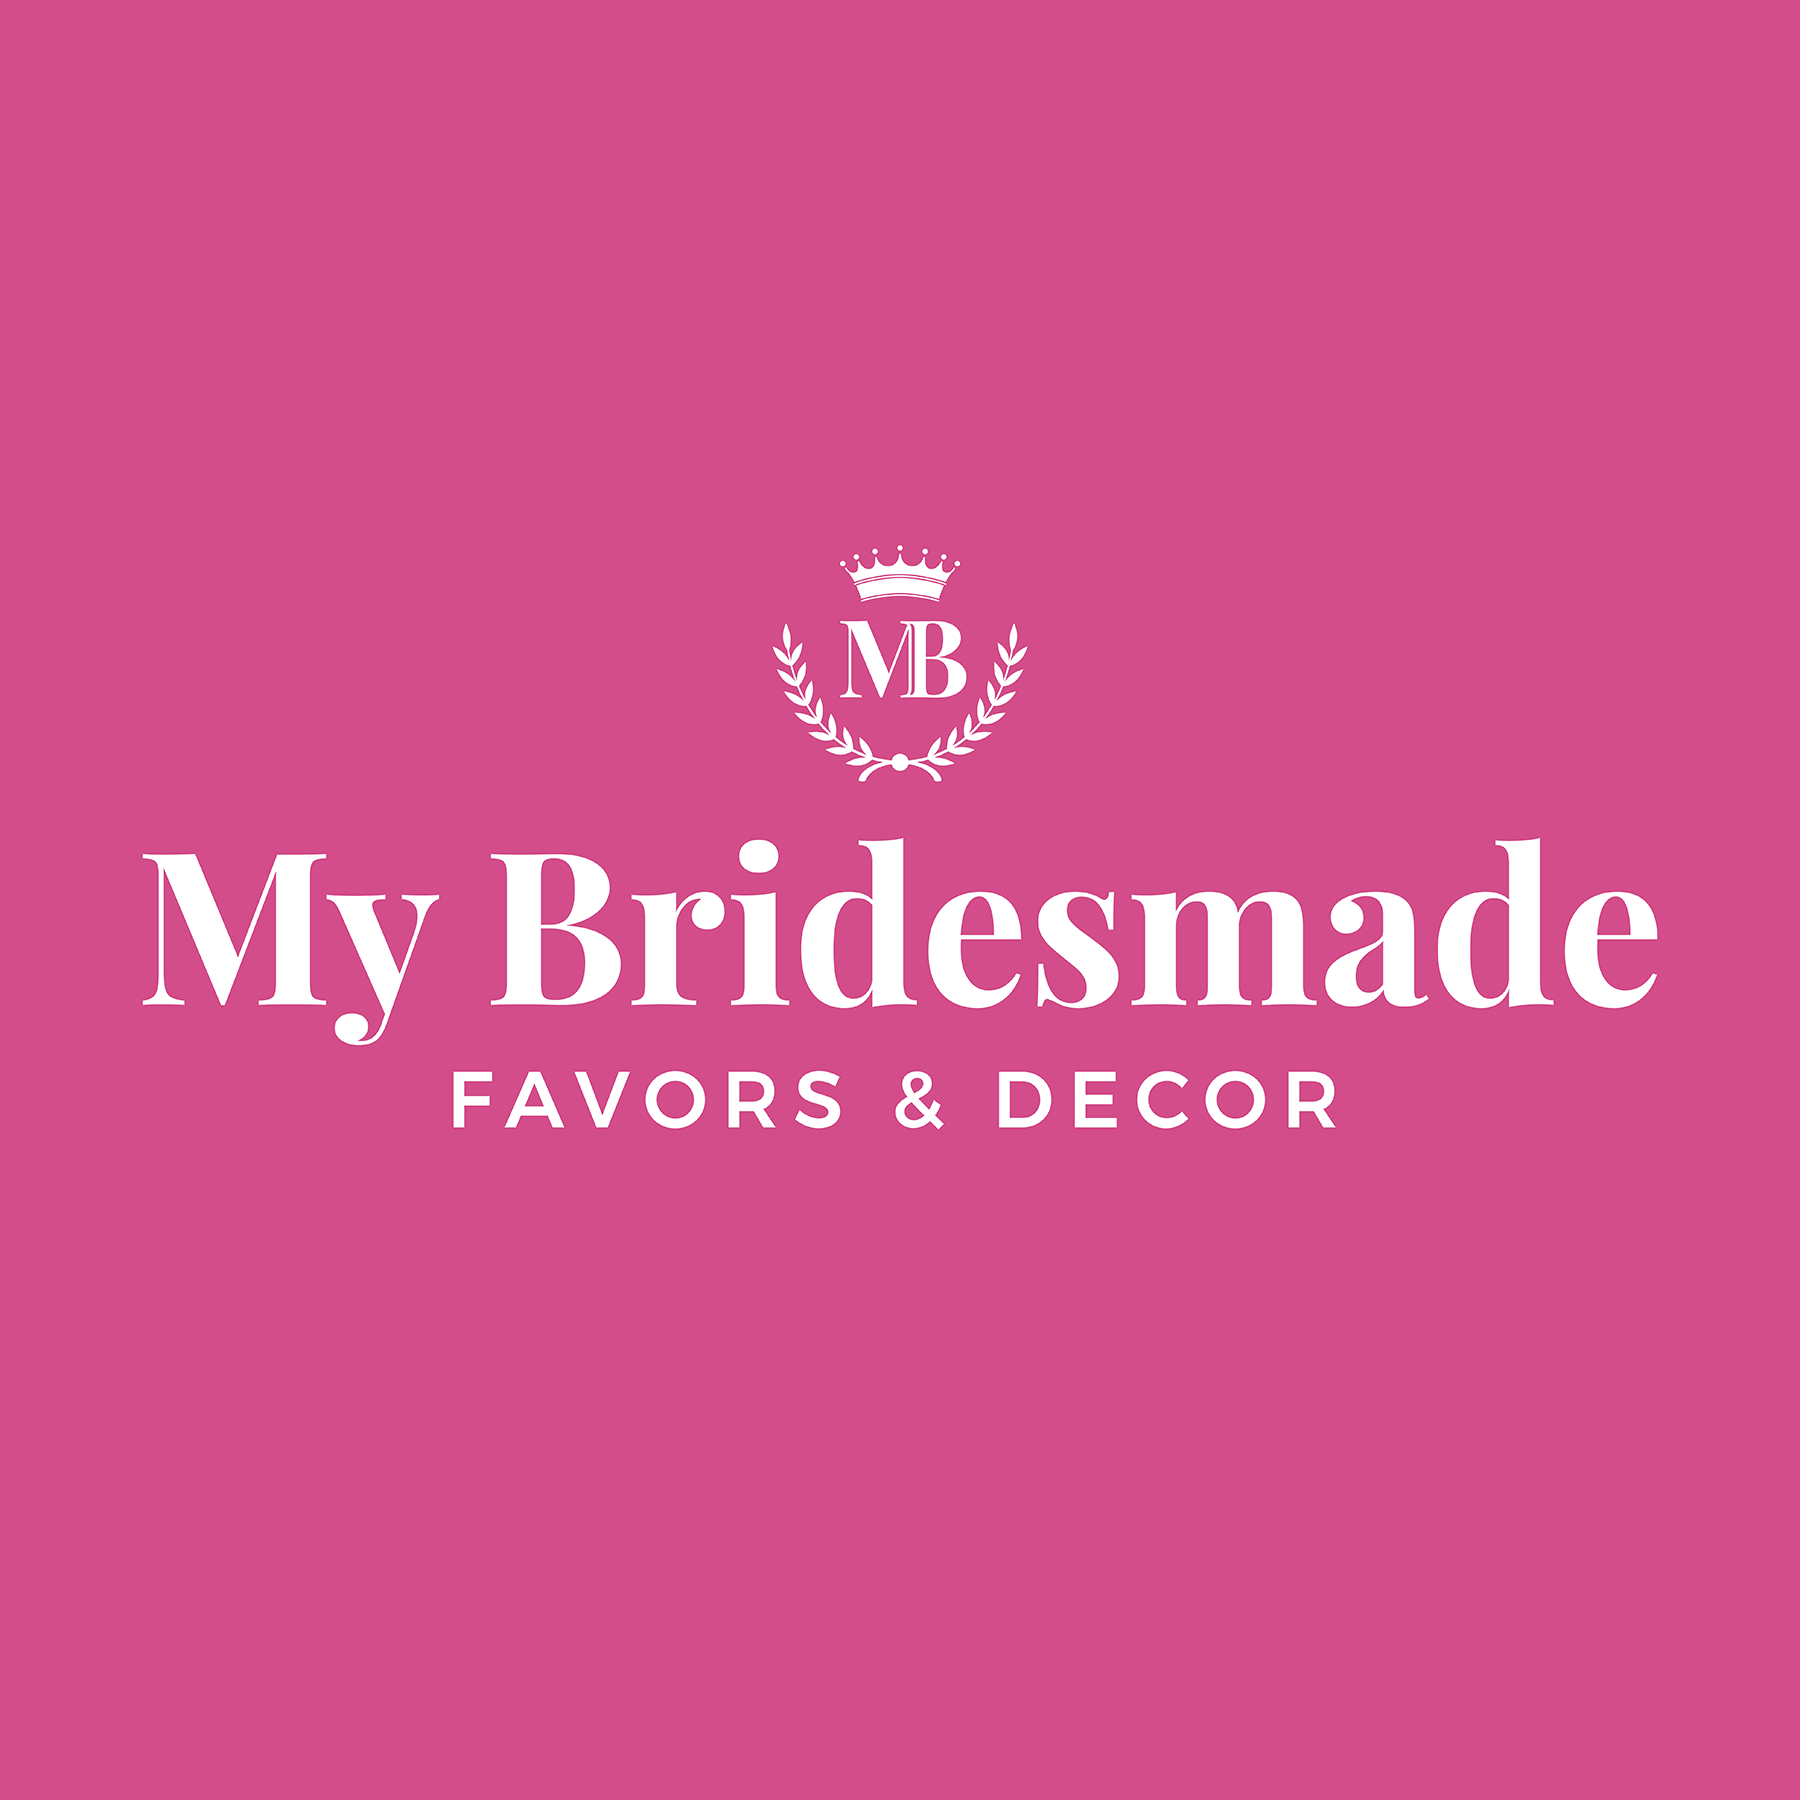 My Bridesmade